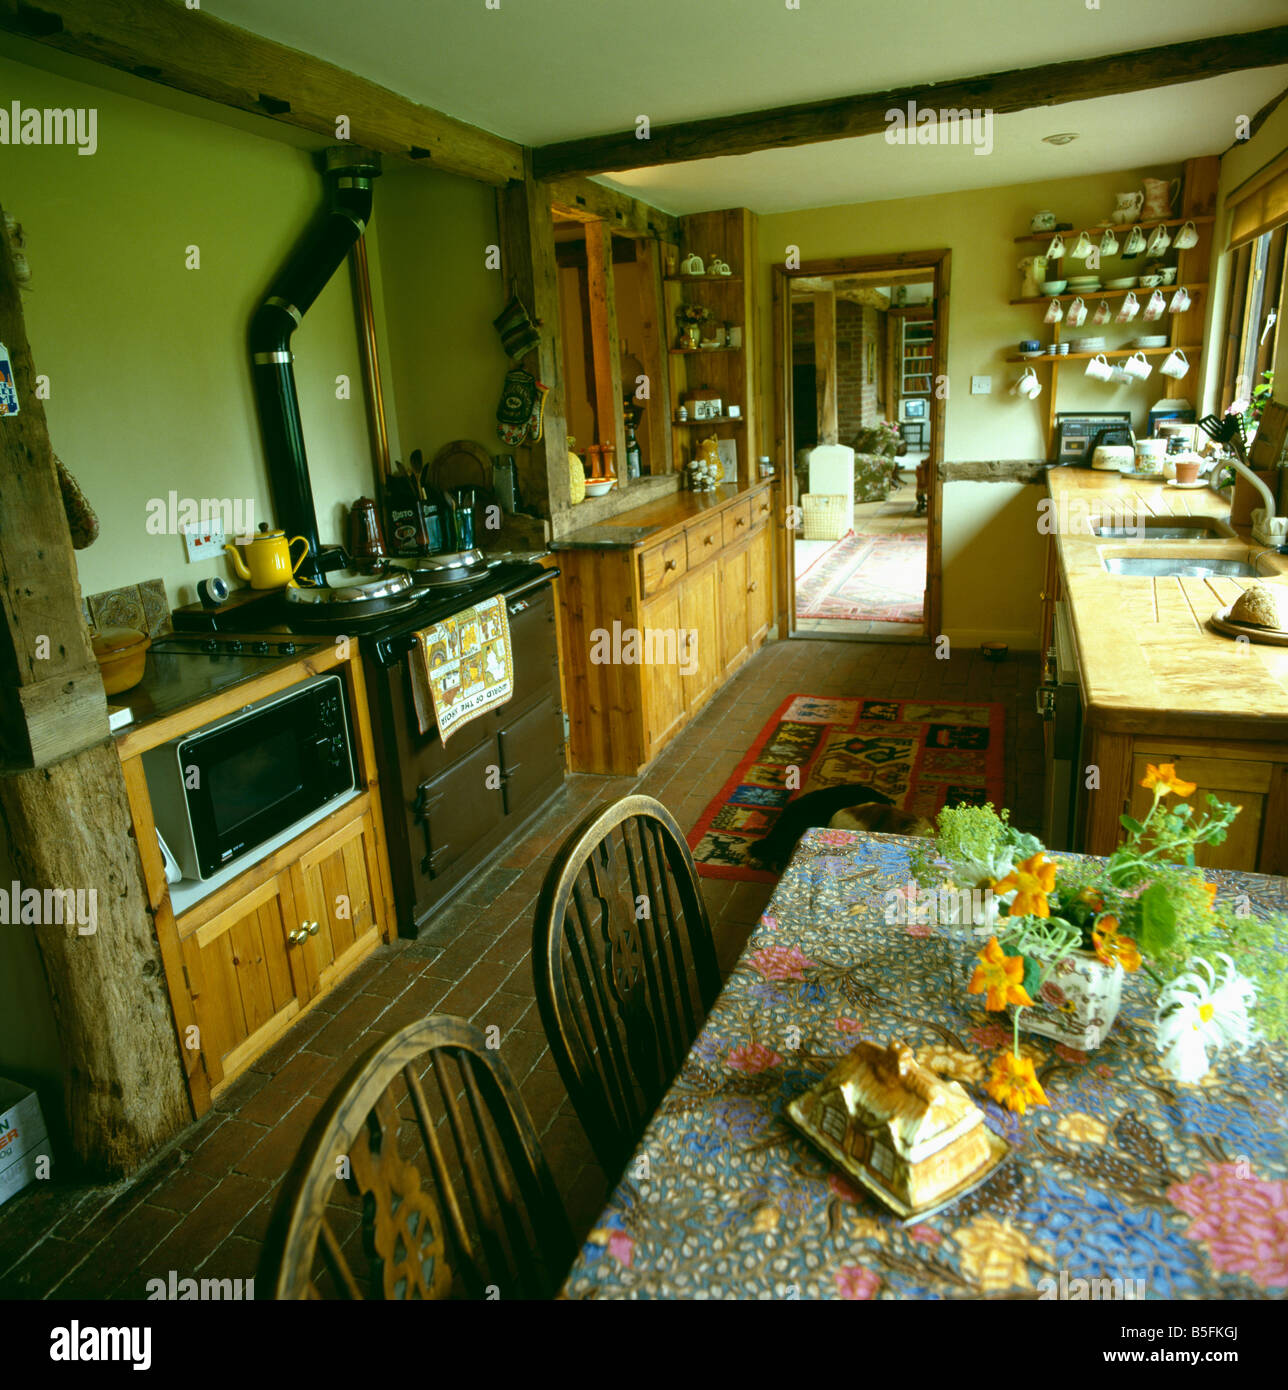 Rayburn Oven In Old Fashioned Country Kitchen With Floral Cloth On Table  And Microwave Fitted Into Pine Unit Part 71